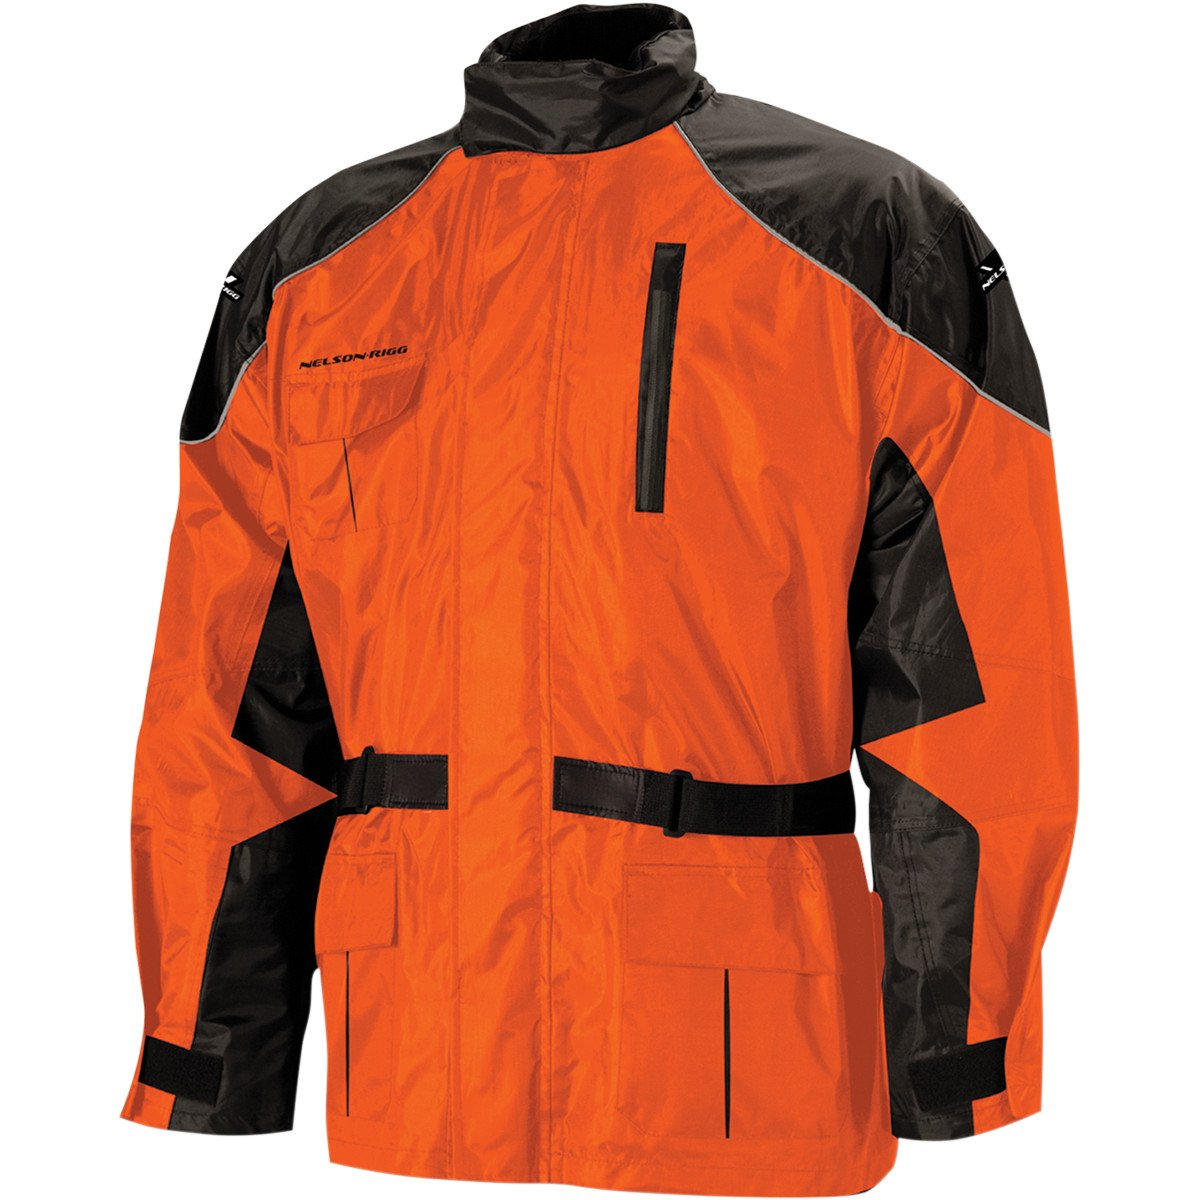 Nelson-Rigg AS-3000 Aston 2-Piece Rain Suit (Black/Orange, X-Large) 409-075 by Nelson-Rigg